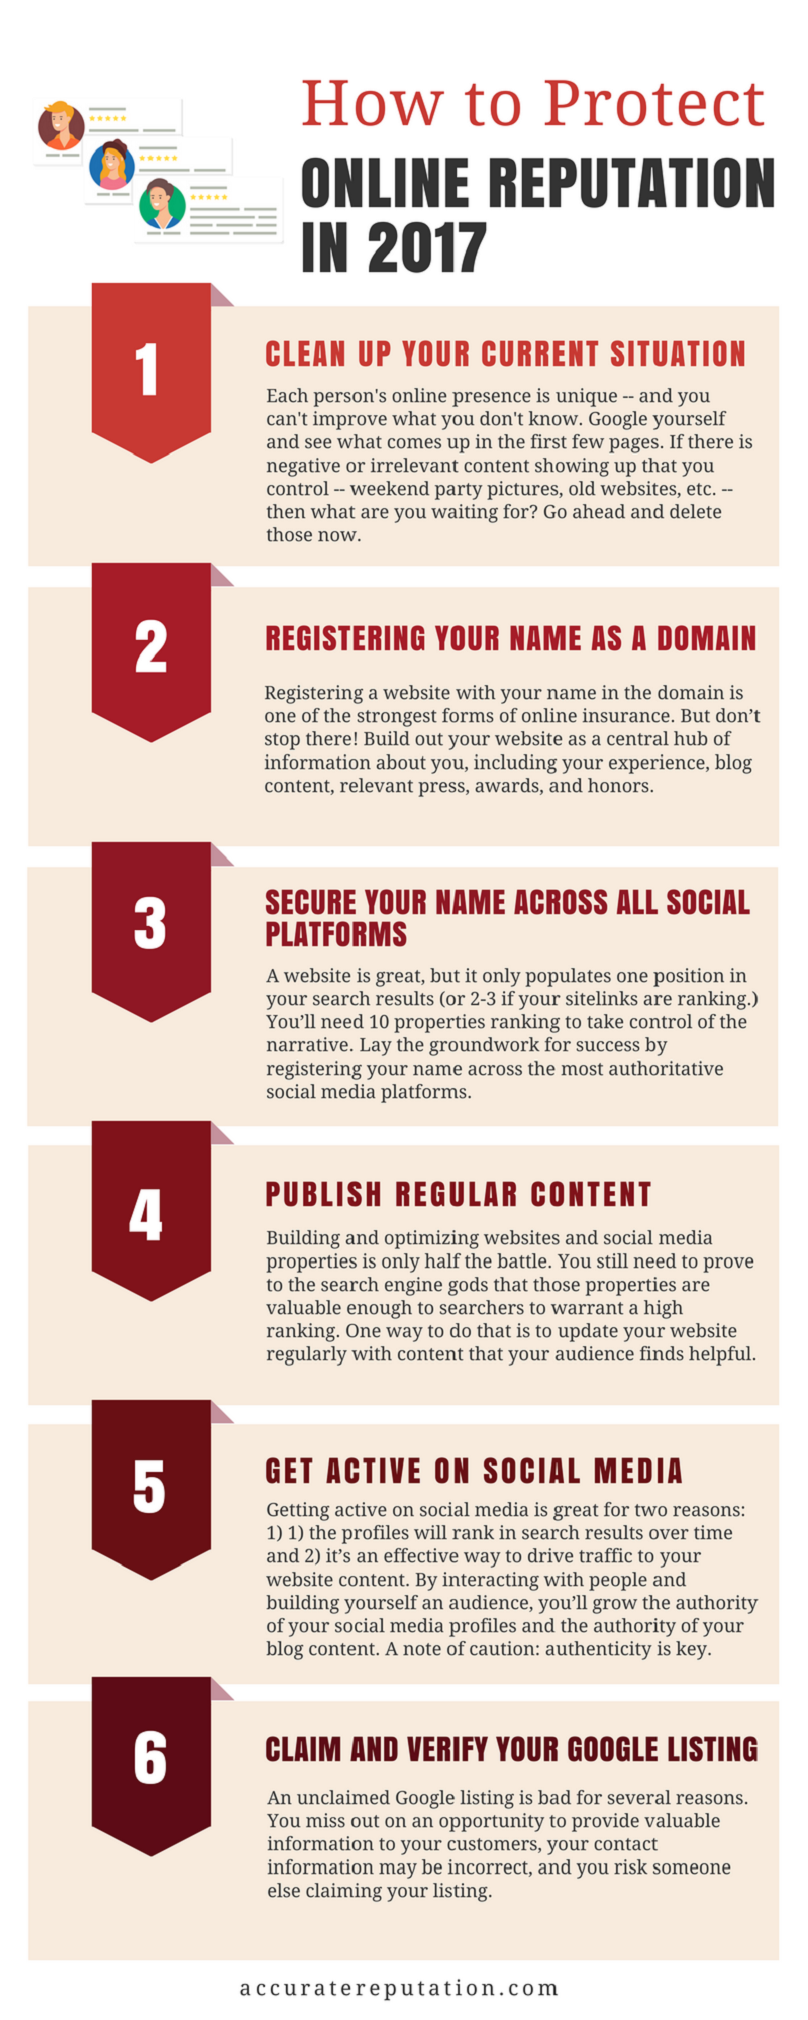 How to Protect Online Reputation in 2017